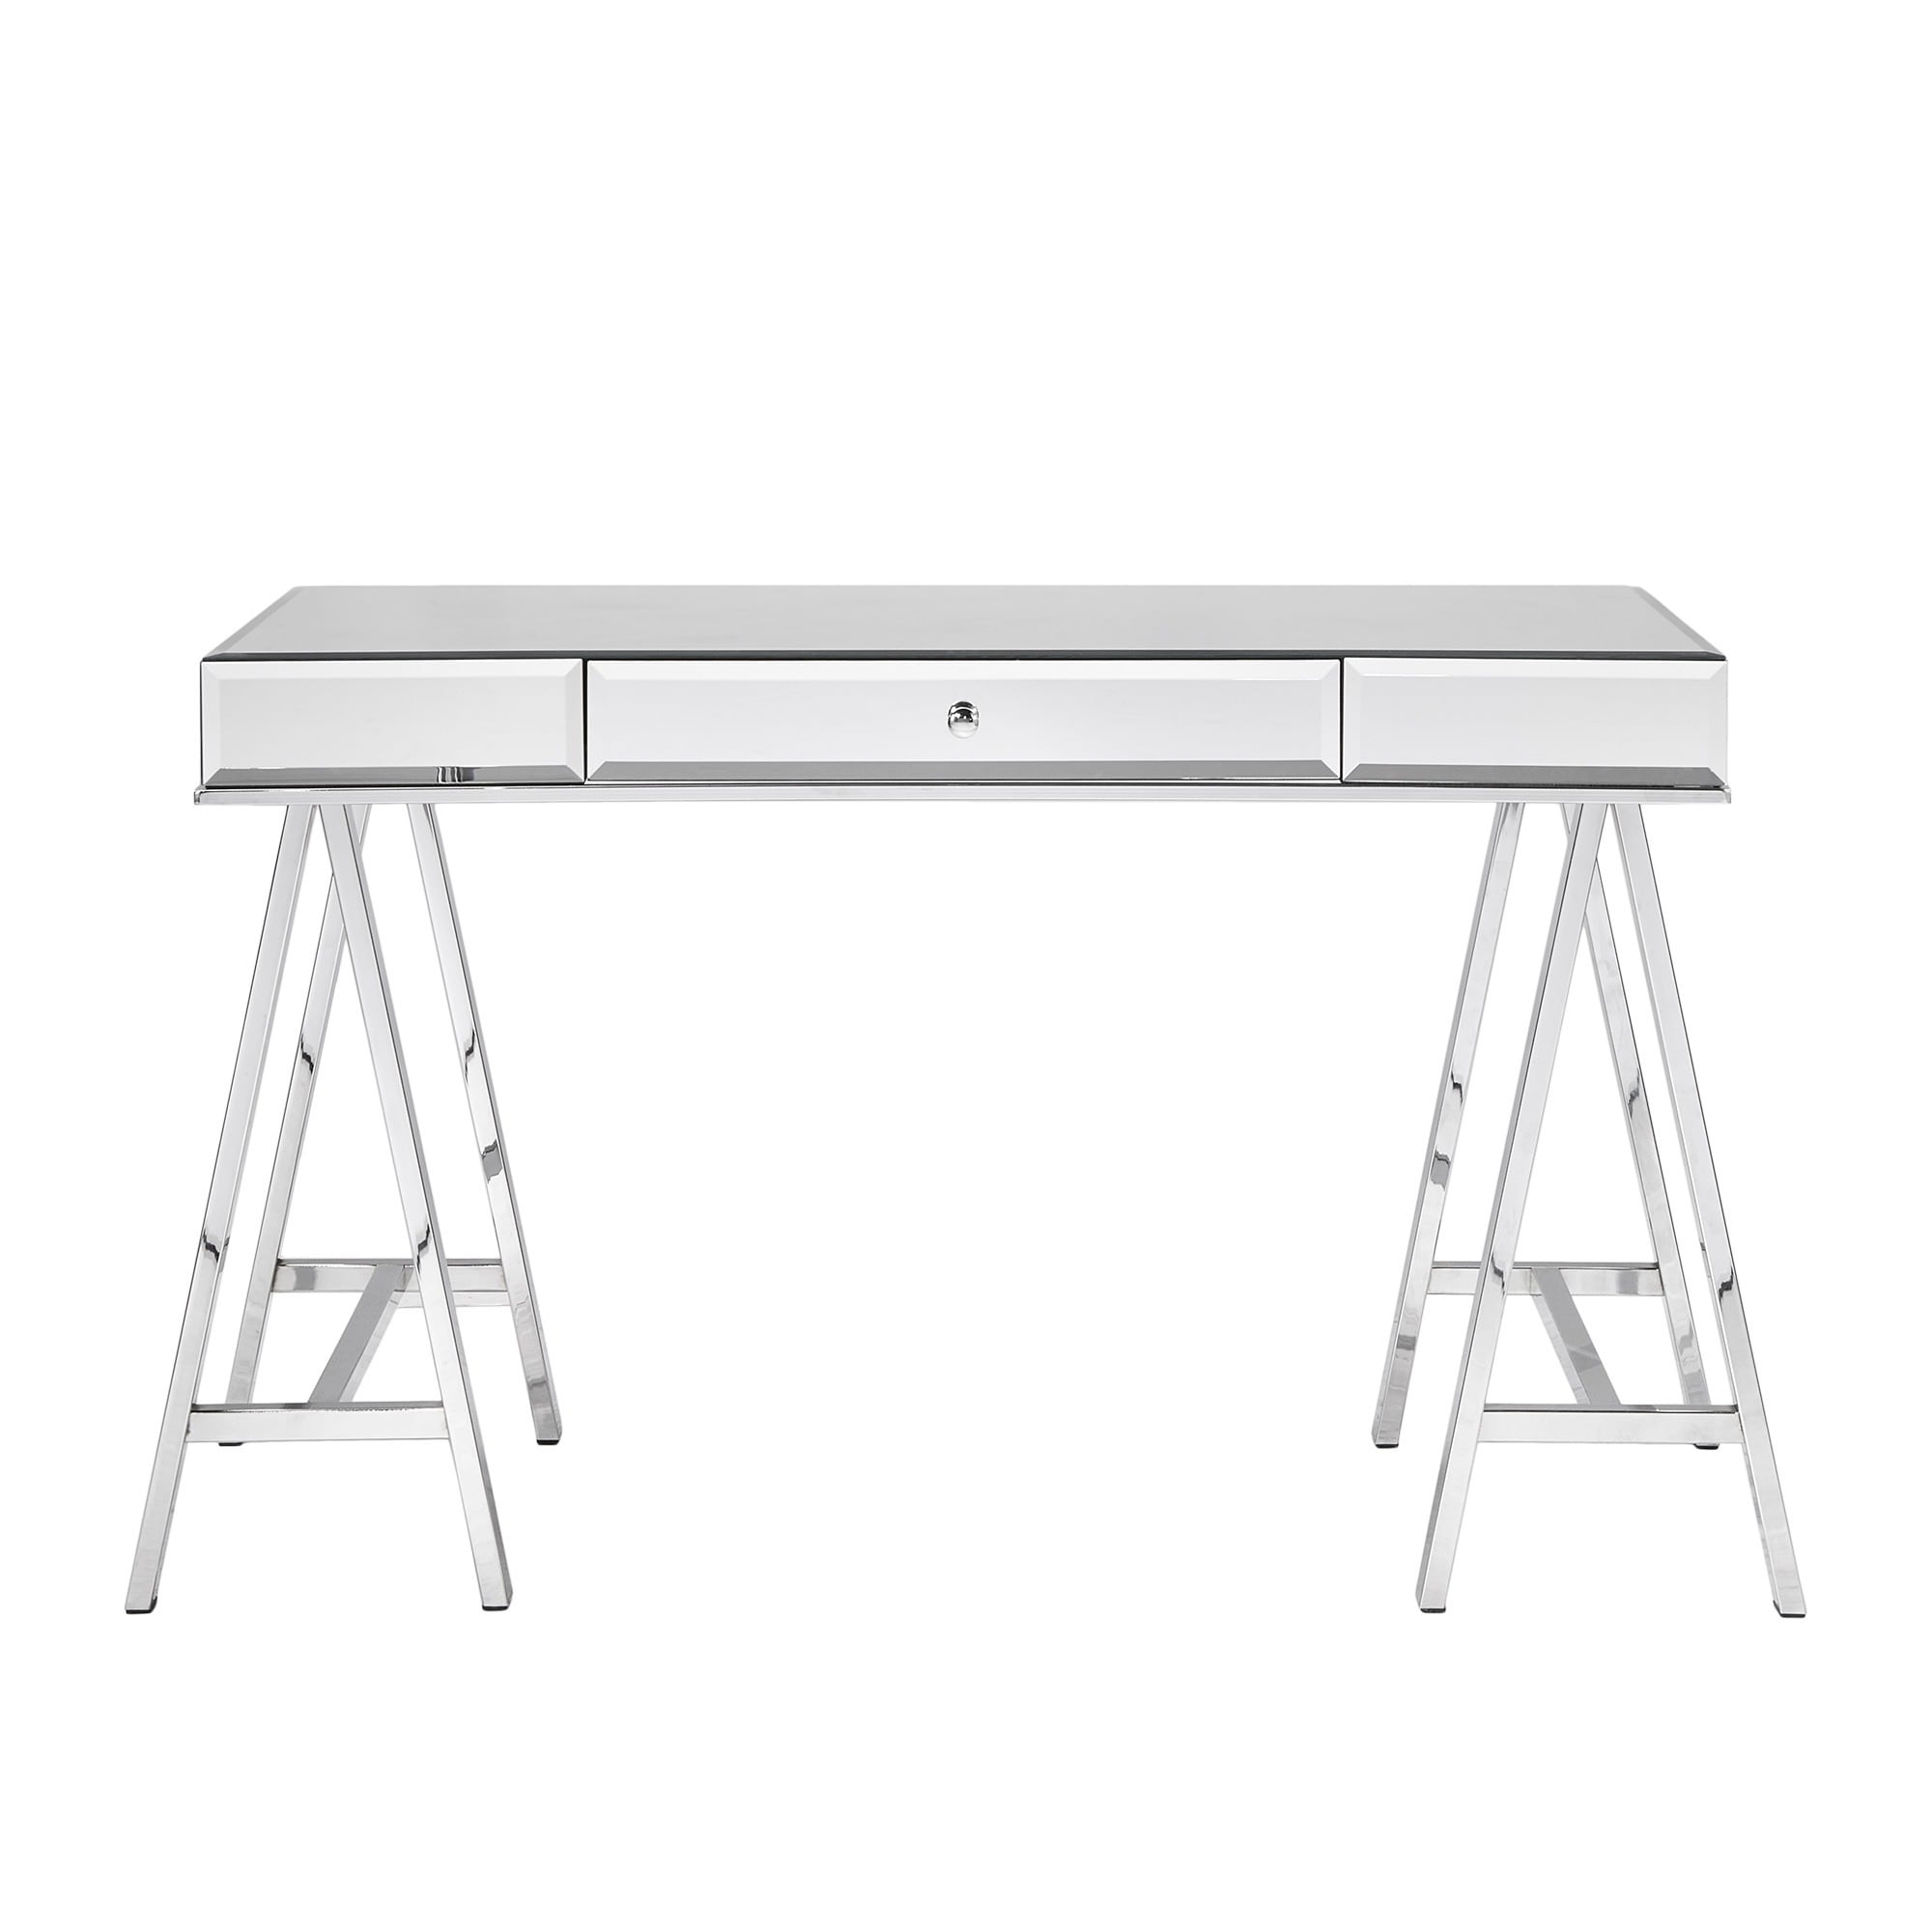 Neron 1-Drawer Mirrored Chrome Sawhorse Desk by iNSPIRE Q Bold - Free  Shipping Today - Overstock.com - 20953630